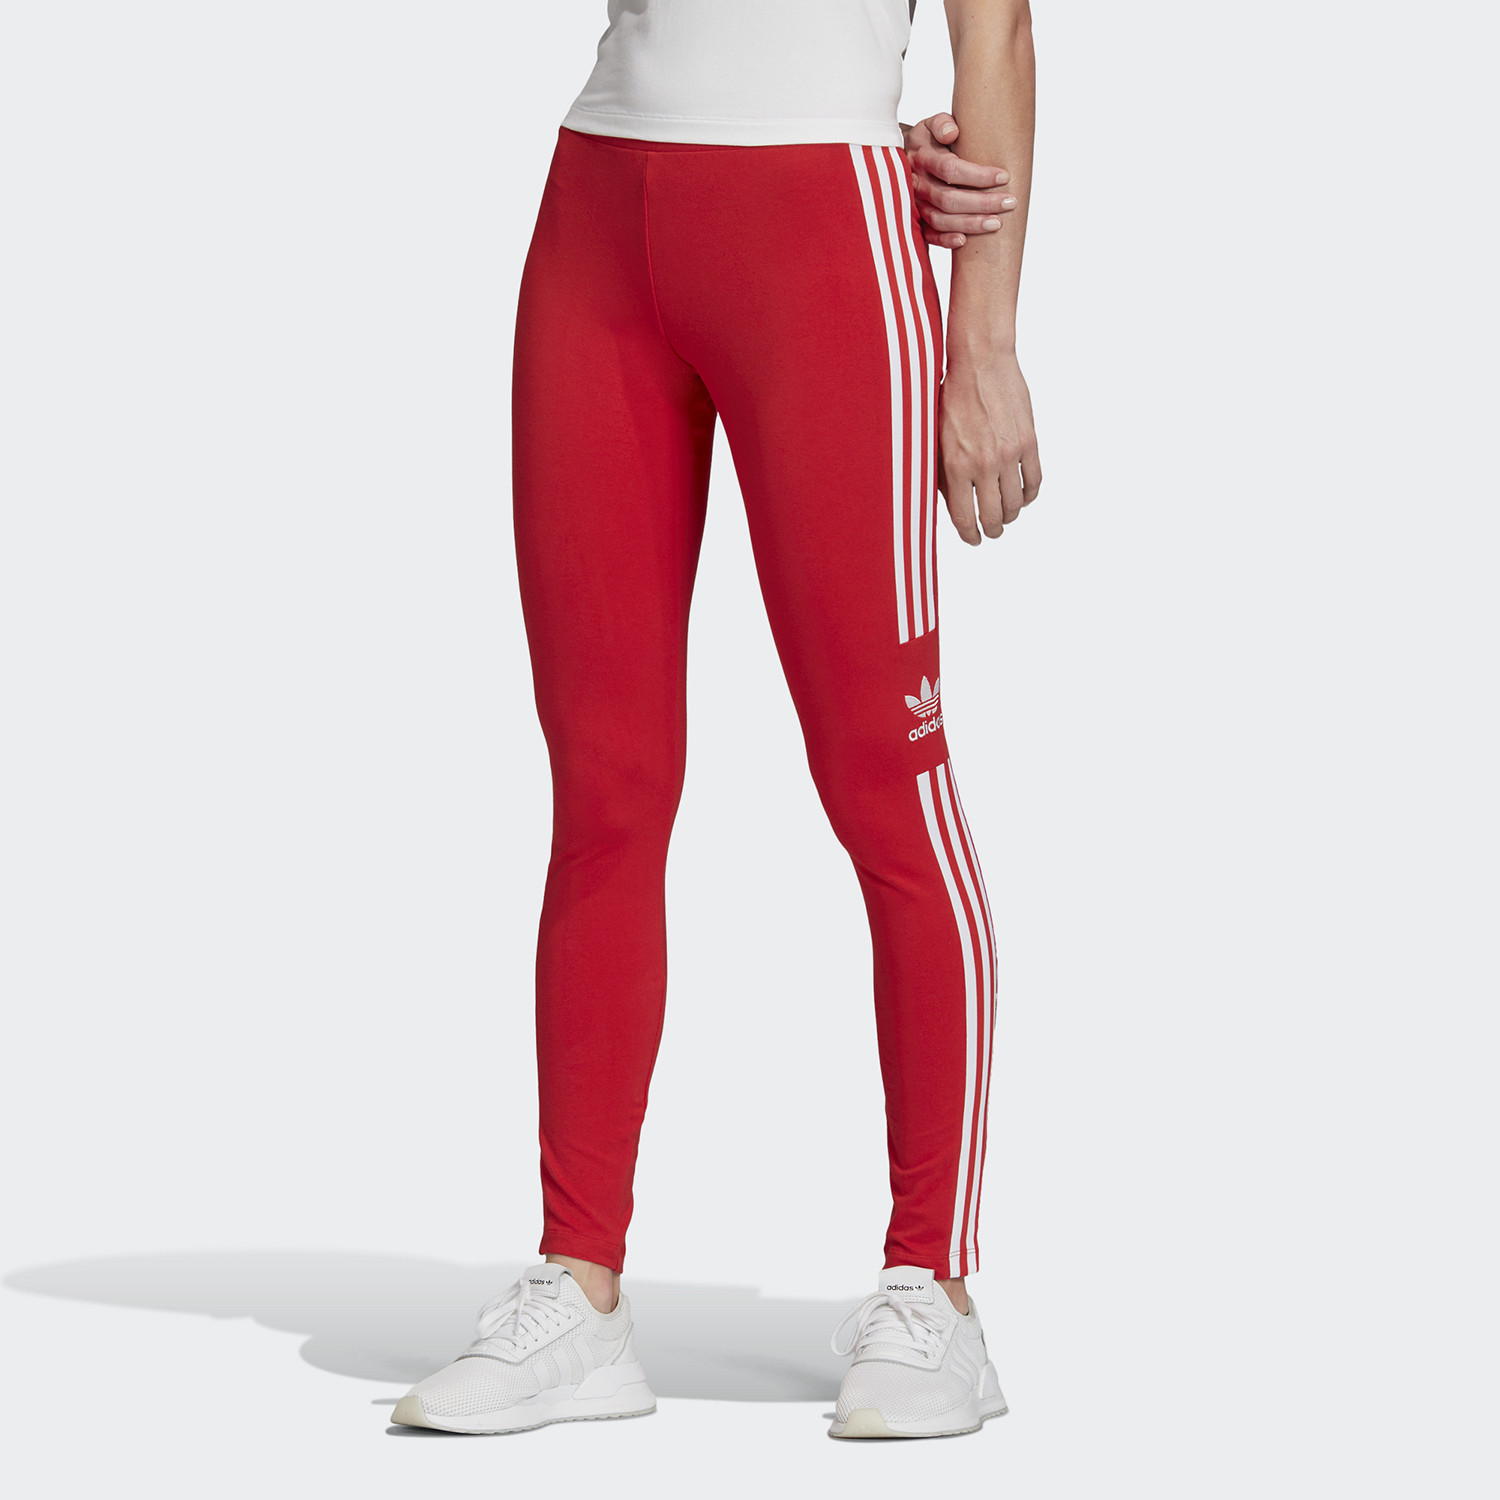 adidas Originals Trefoil Women's Tights (9000045506_43544)